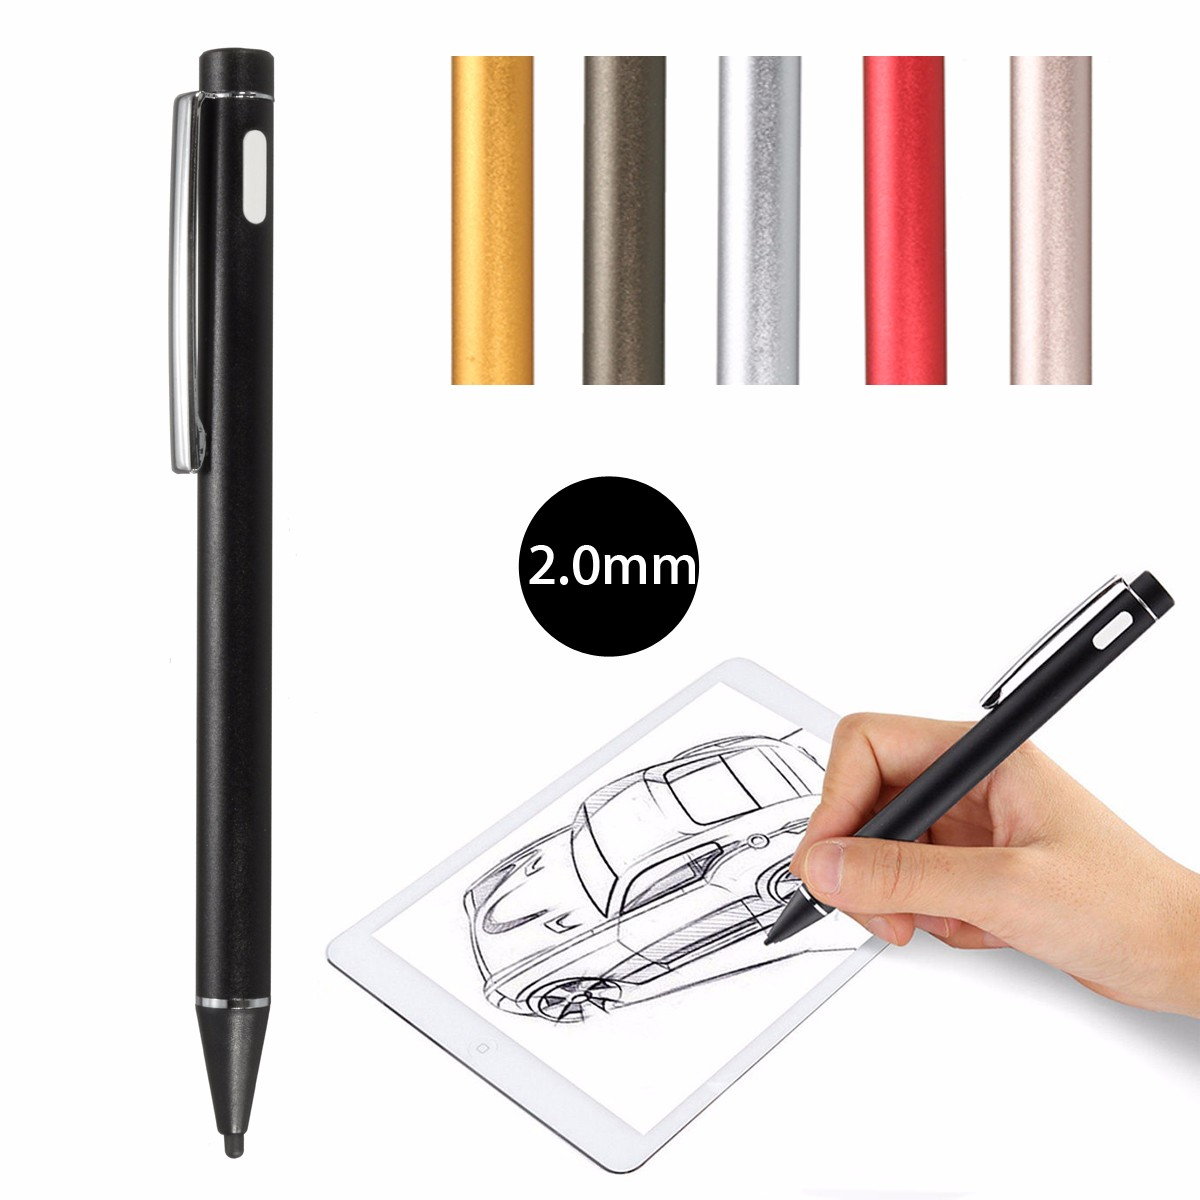 Universal 2.0mm Active Stylus Capacitive Touch Screen Pen  for iPhone, iPad 2, most Android tablet and smartphone Digital Drawing Pens